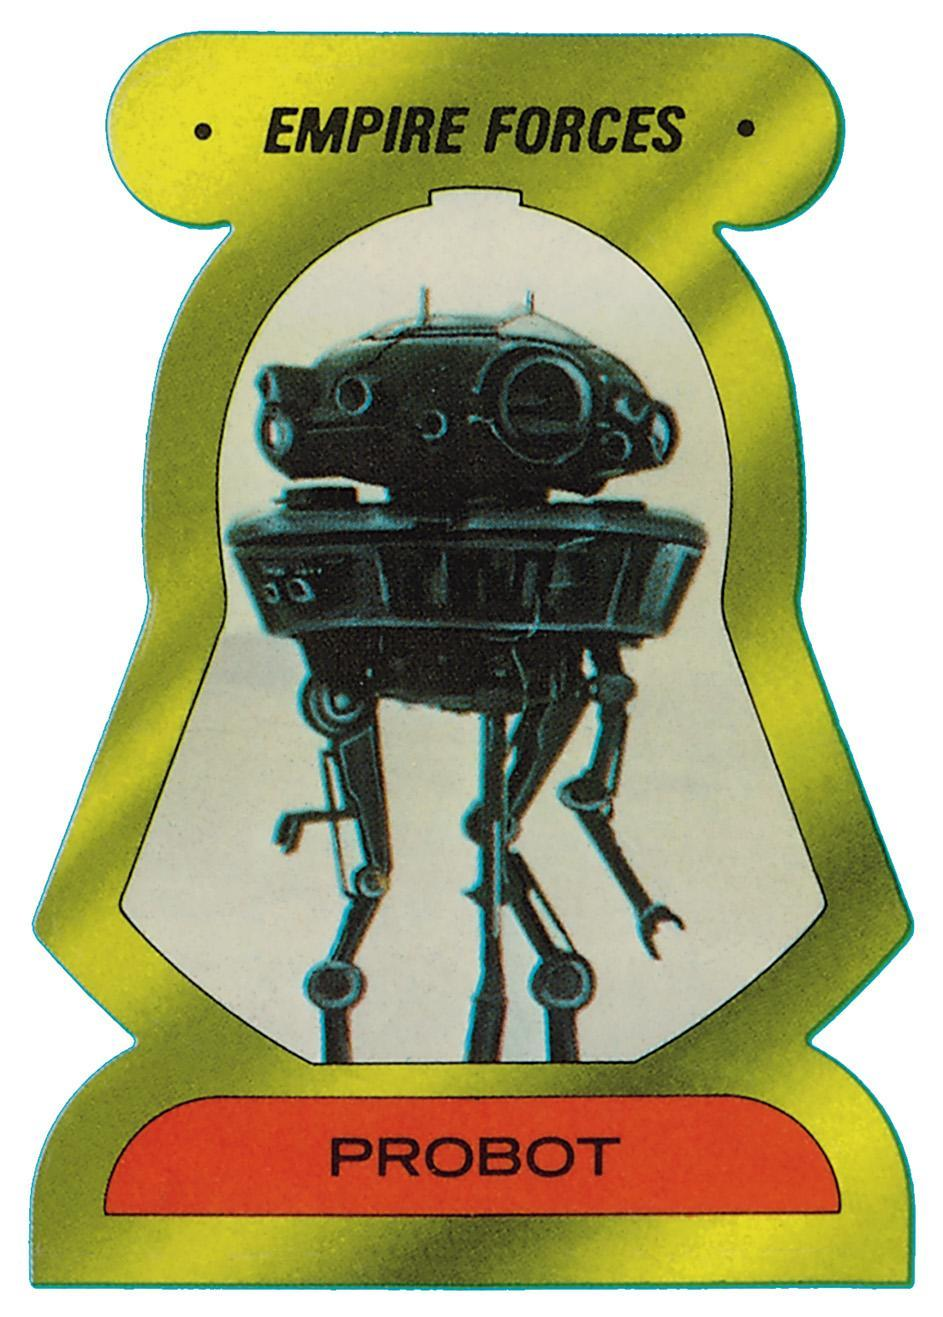 """<p>Initially known as a """"probot"""" when introduced in <i>Empire</i>, these Imperial nasties are now officially called Viper probe droids. You might have briefly seen a viper droid make a cameo in <i>Rogue One</i>. (Credit: The Topps Company and Lucasfilm Ltd (C) Abrams Books) </p>"""